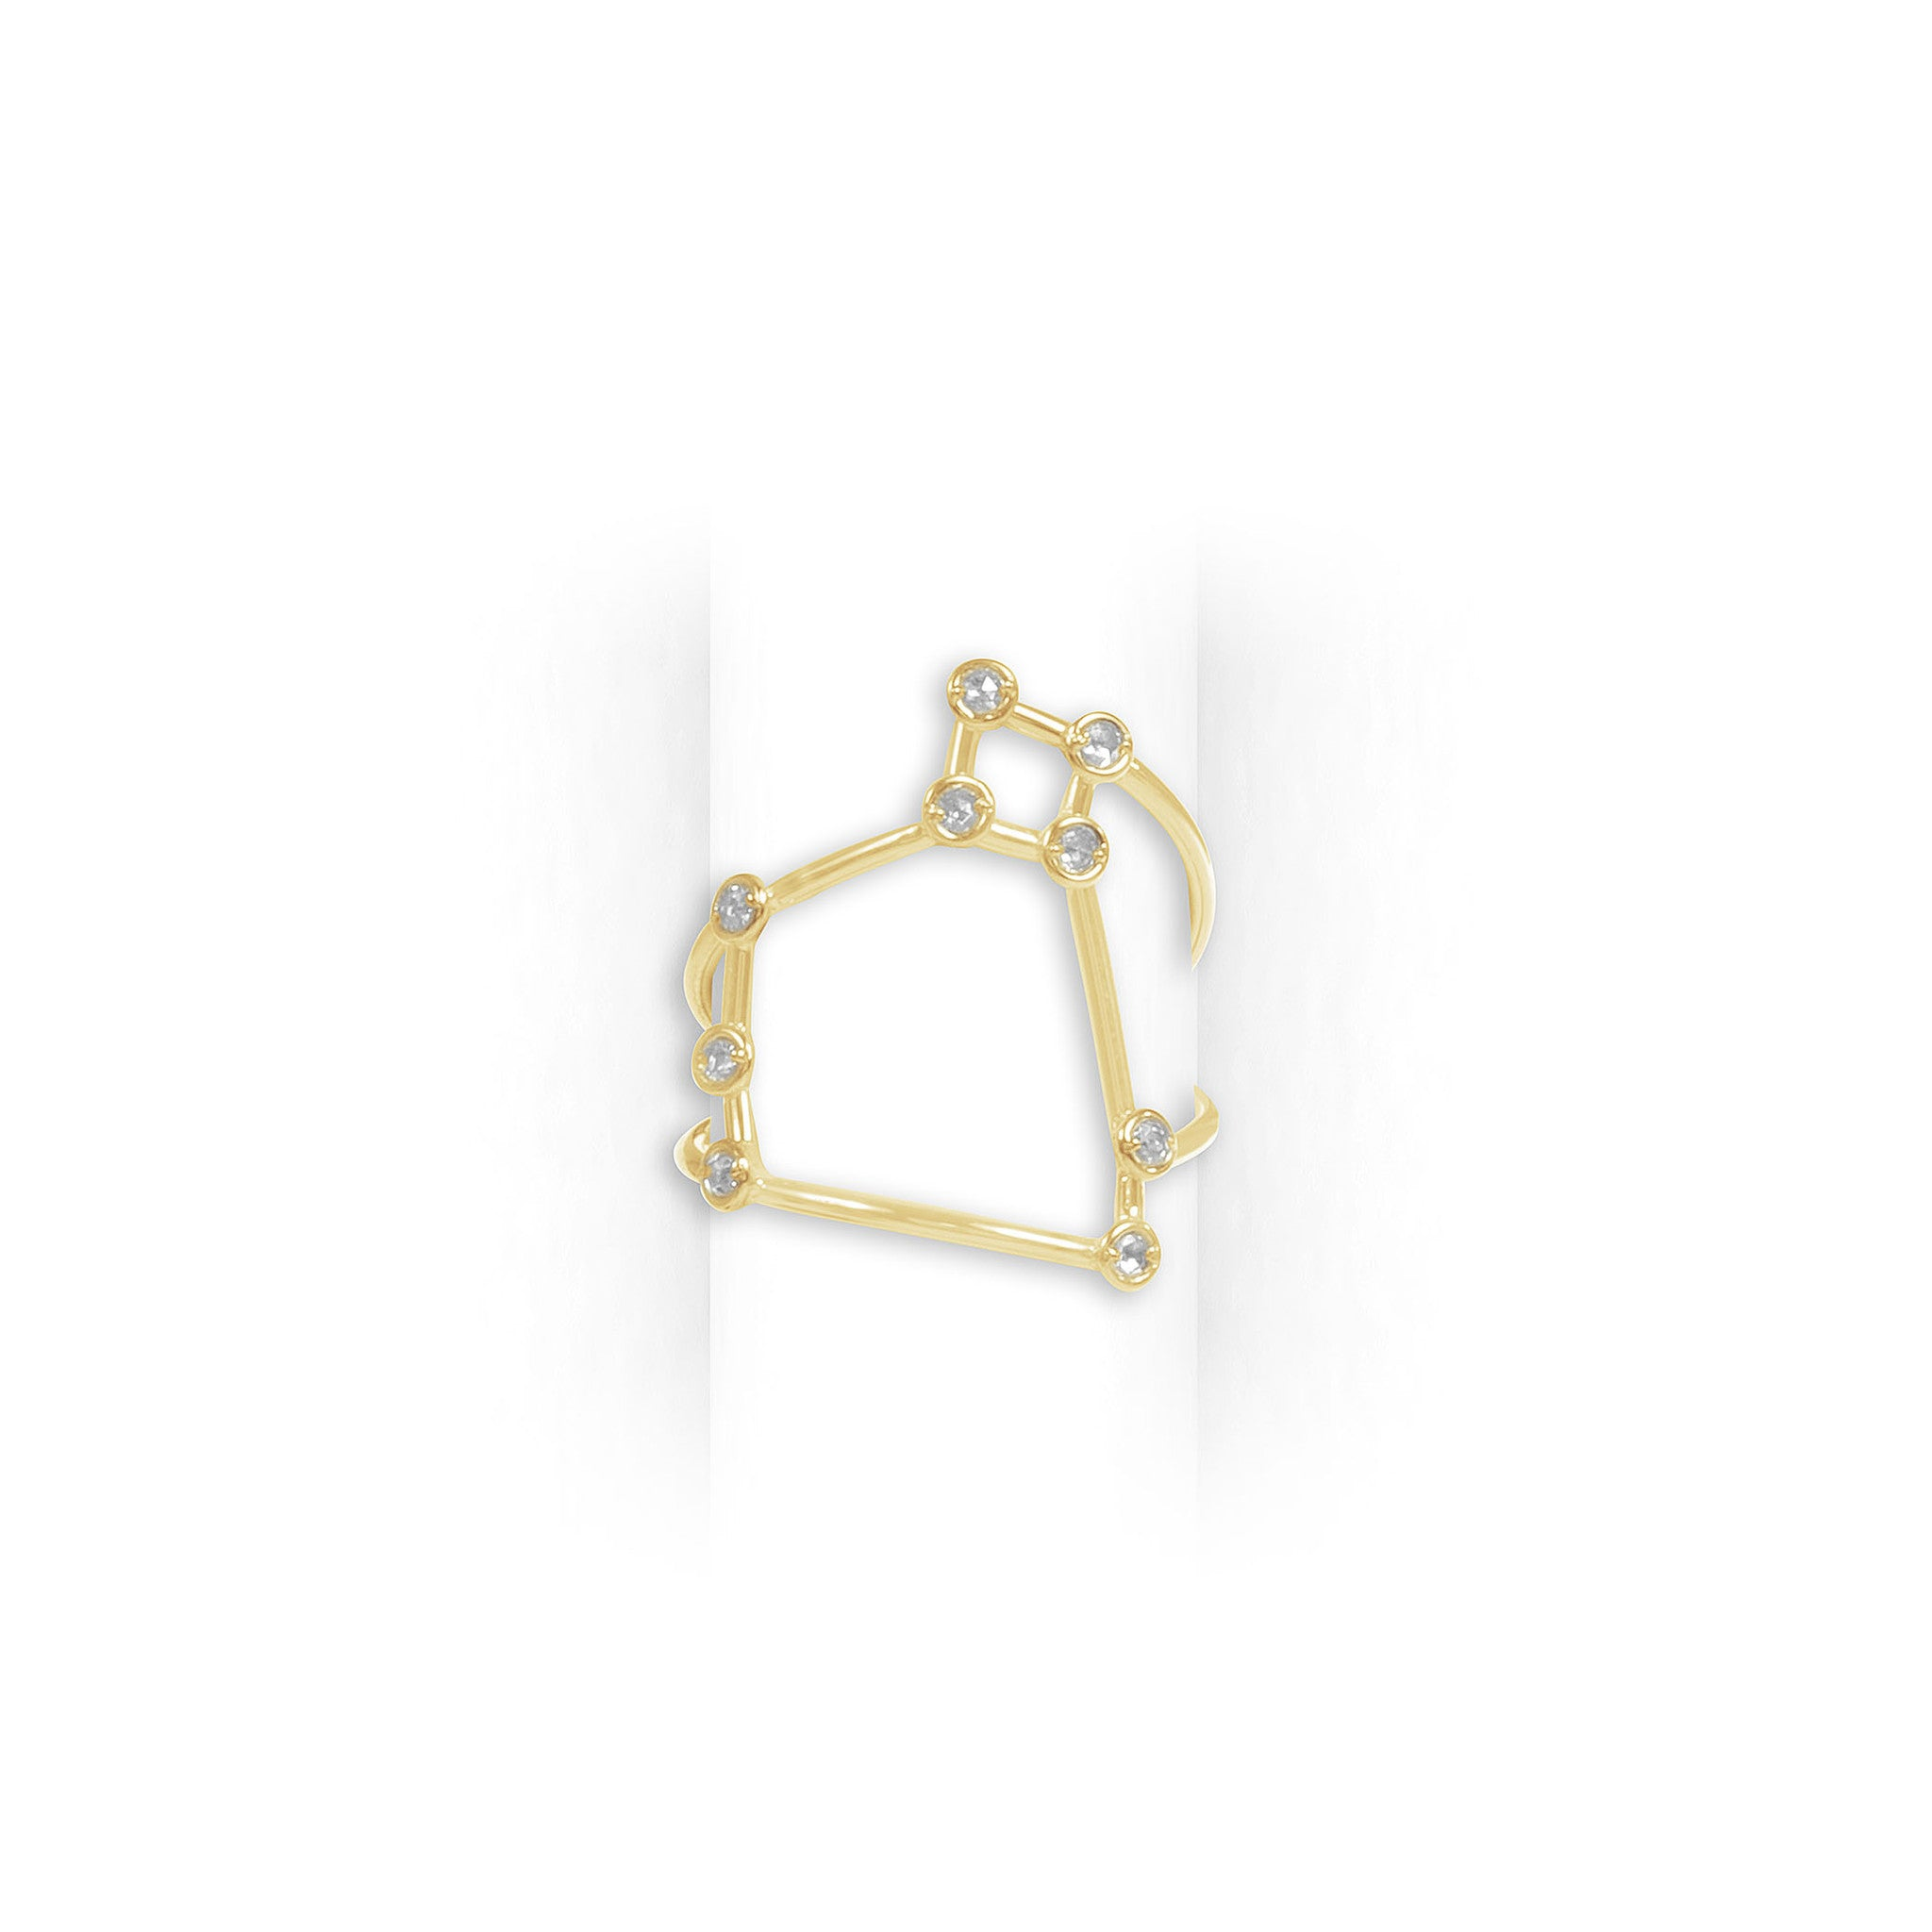 Sagittarius Constellation Ring